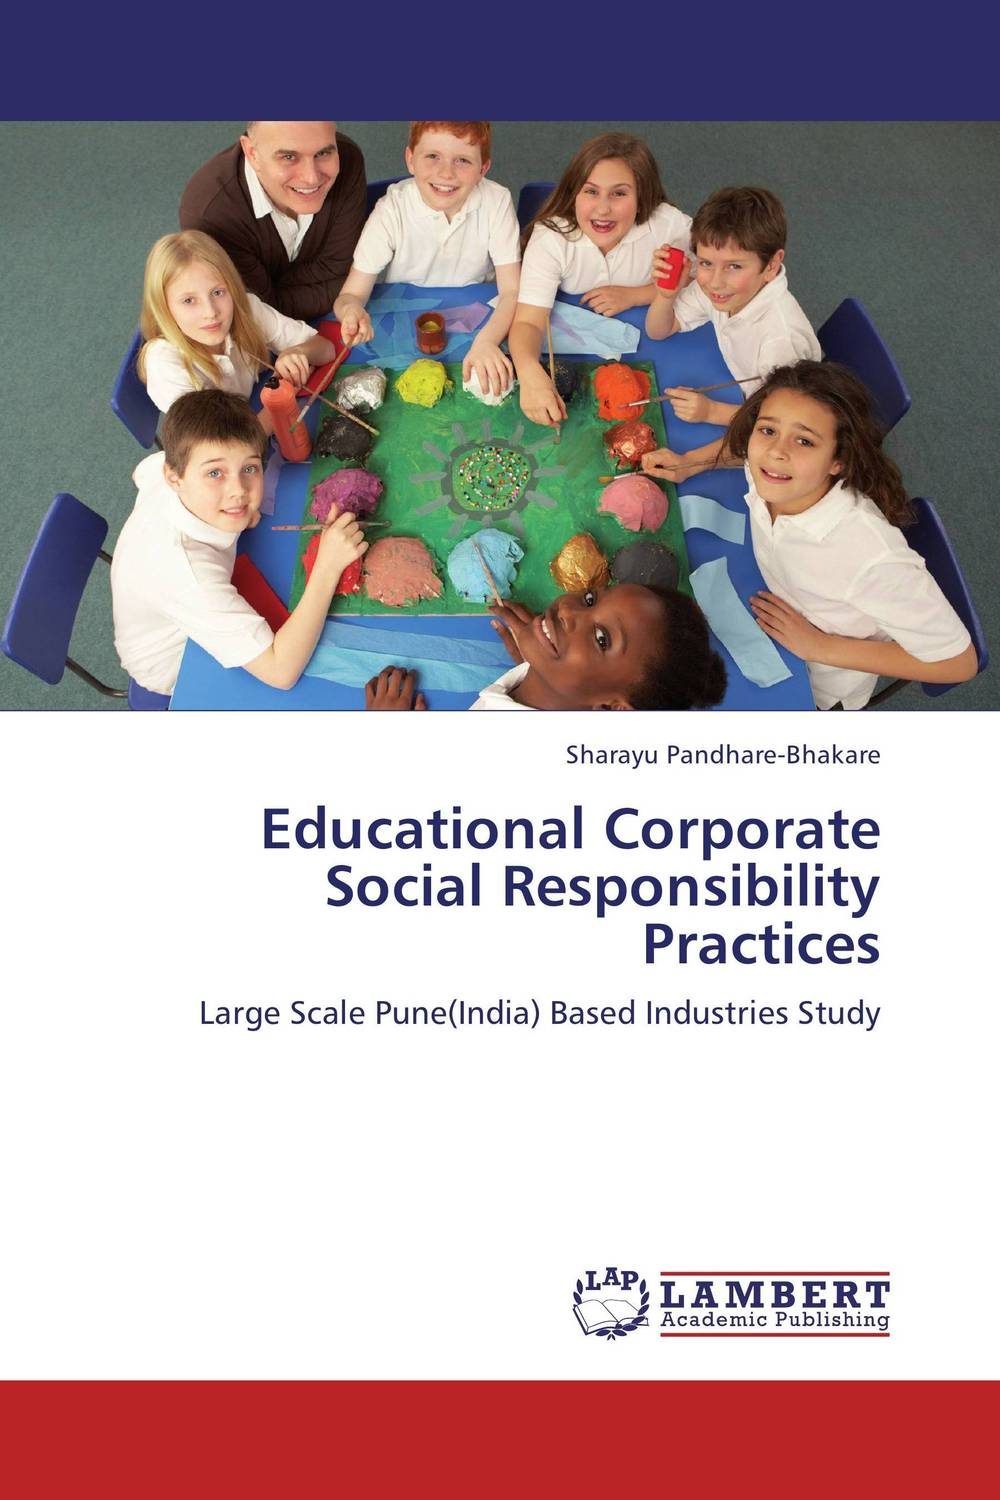 Educational  Corporate Social Responsibility Practices dan zheng the impact of employees perception of corporate social responsibility